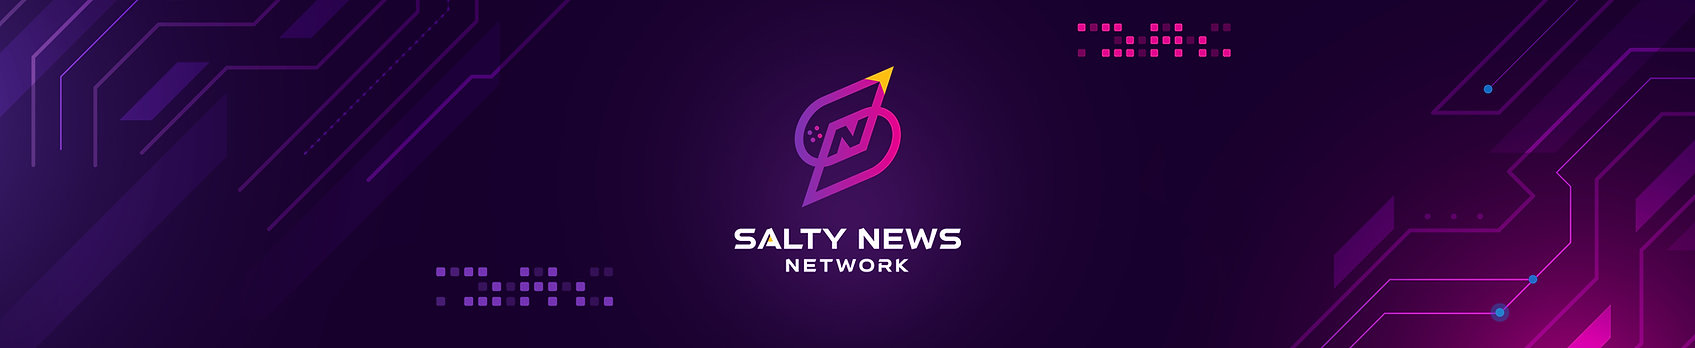 Salty News Network_WEBSITE COVER.jpg